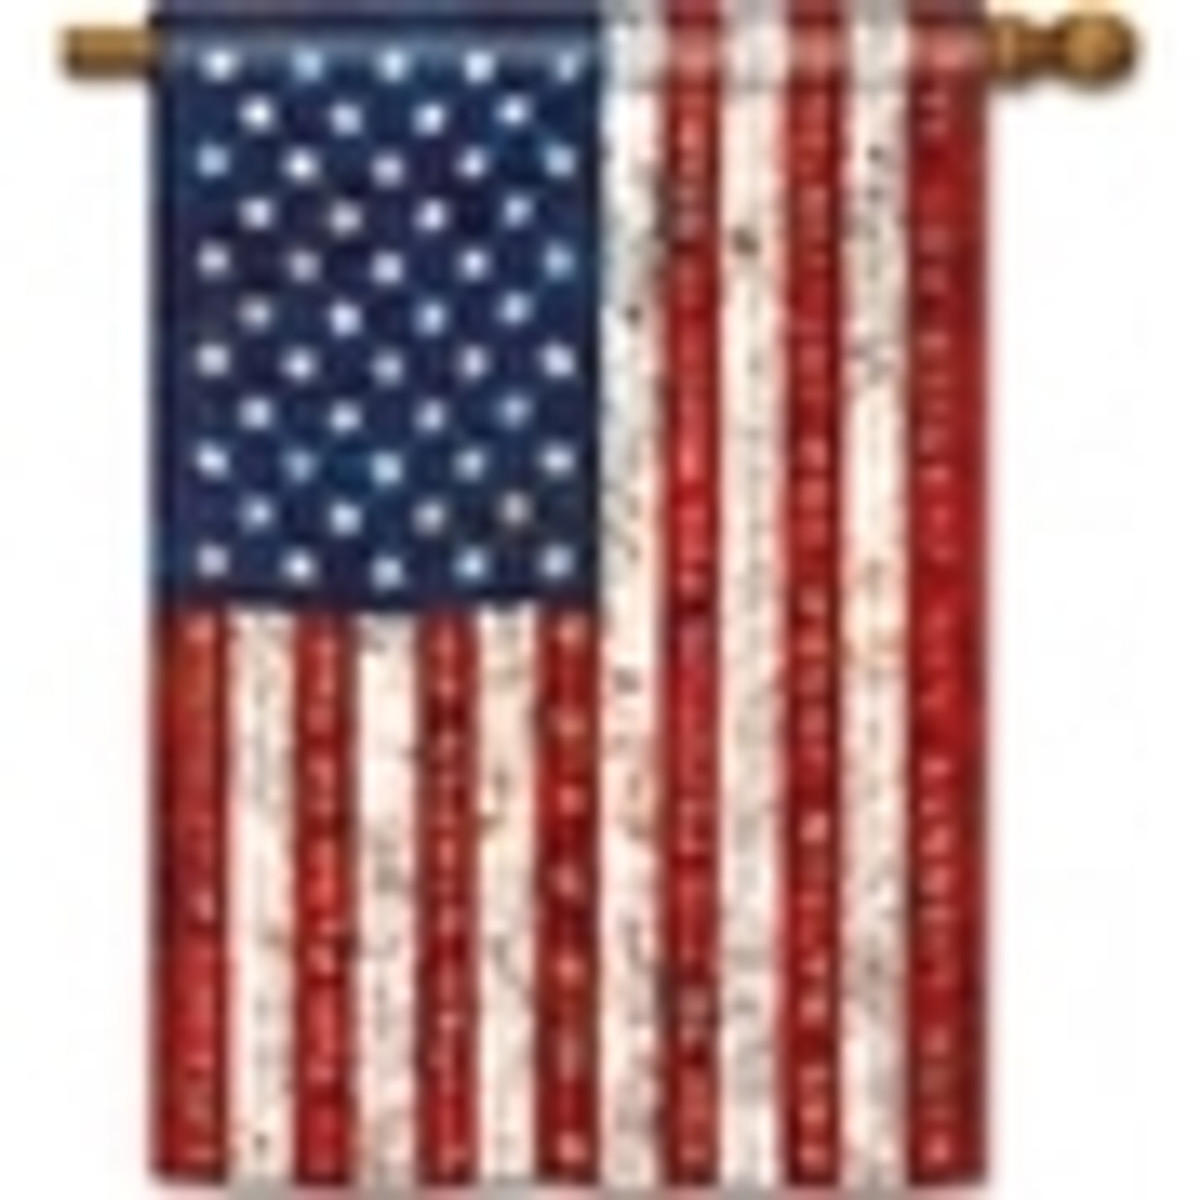 4th of July Decorative Banners